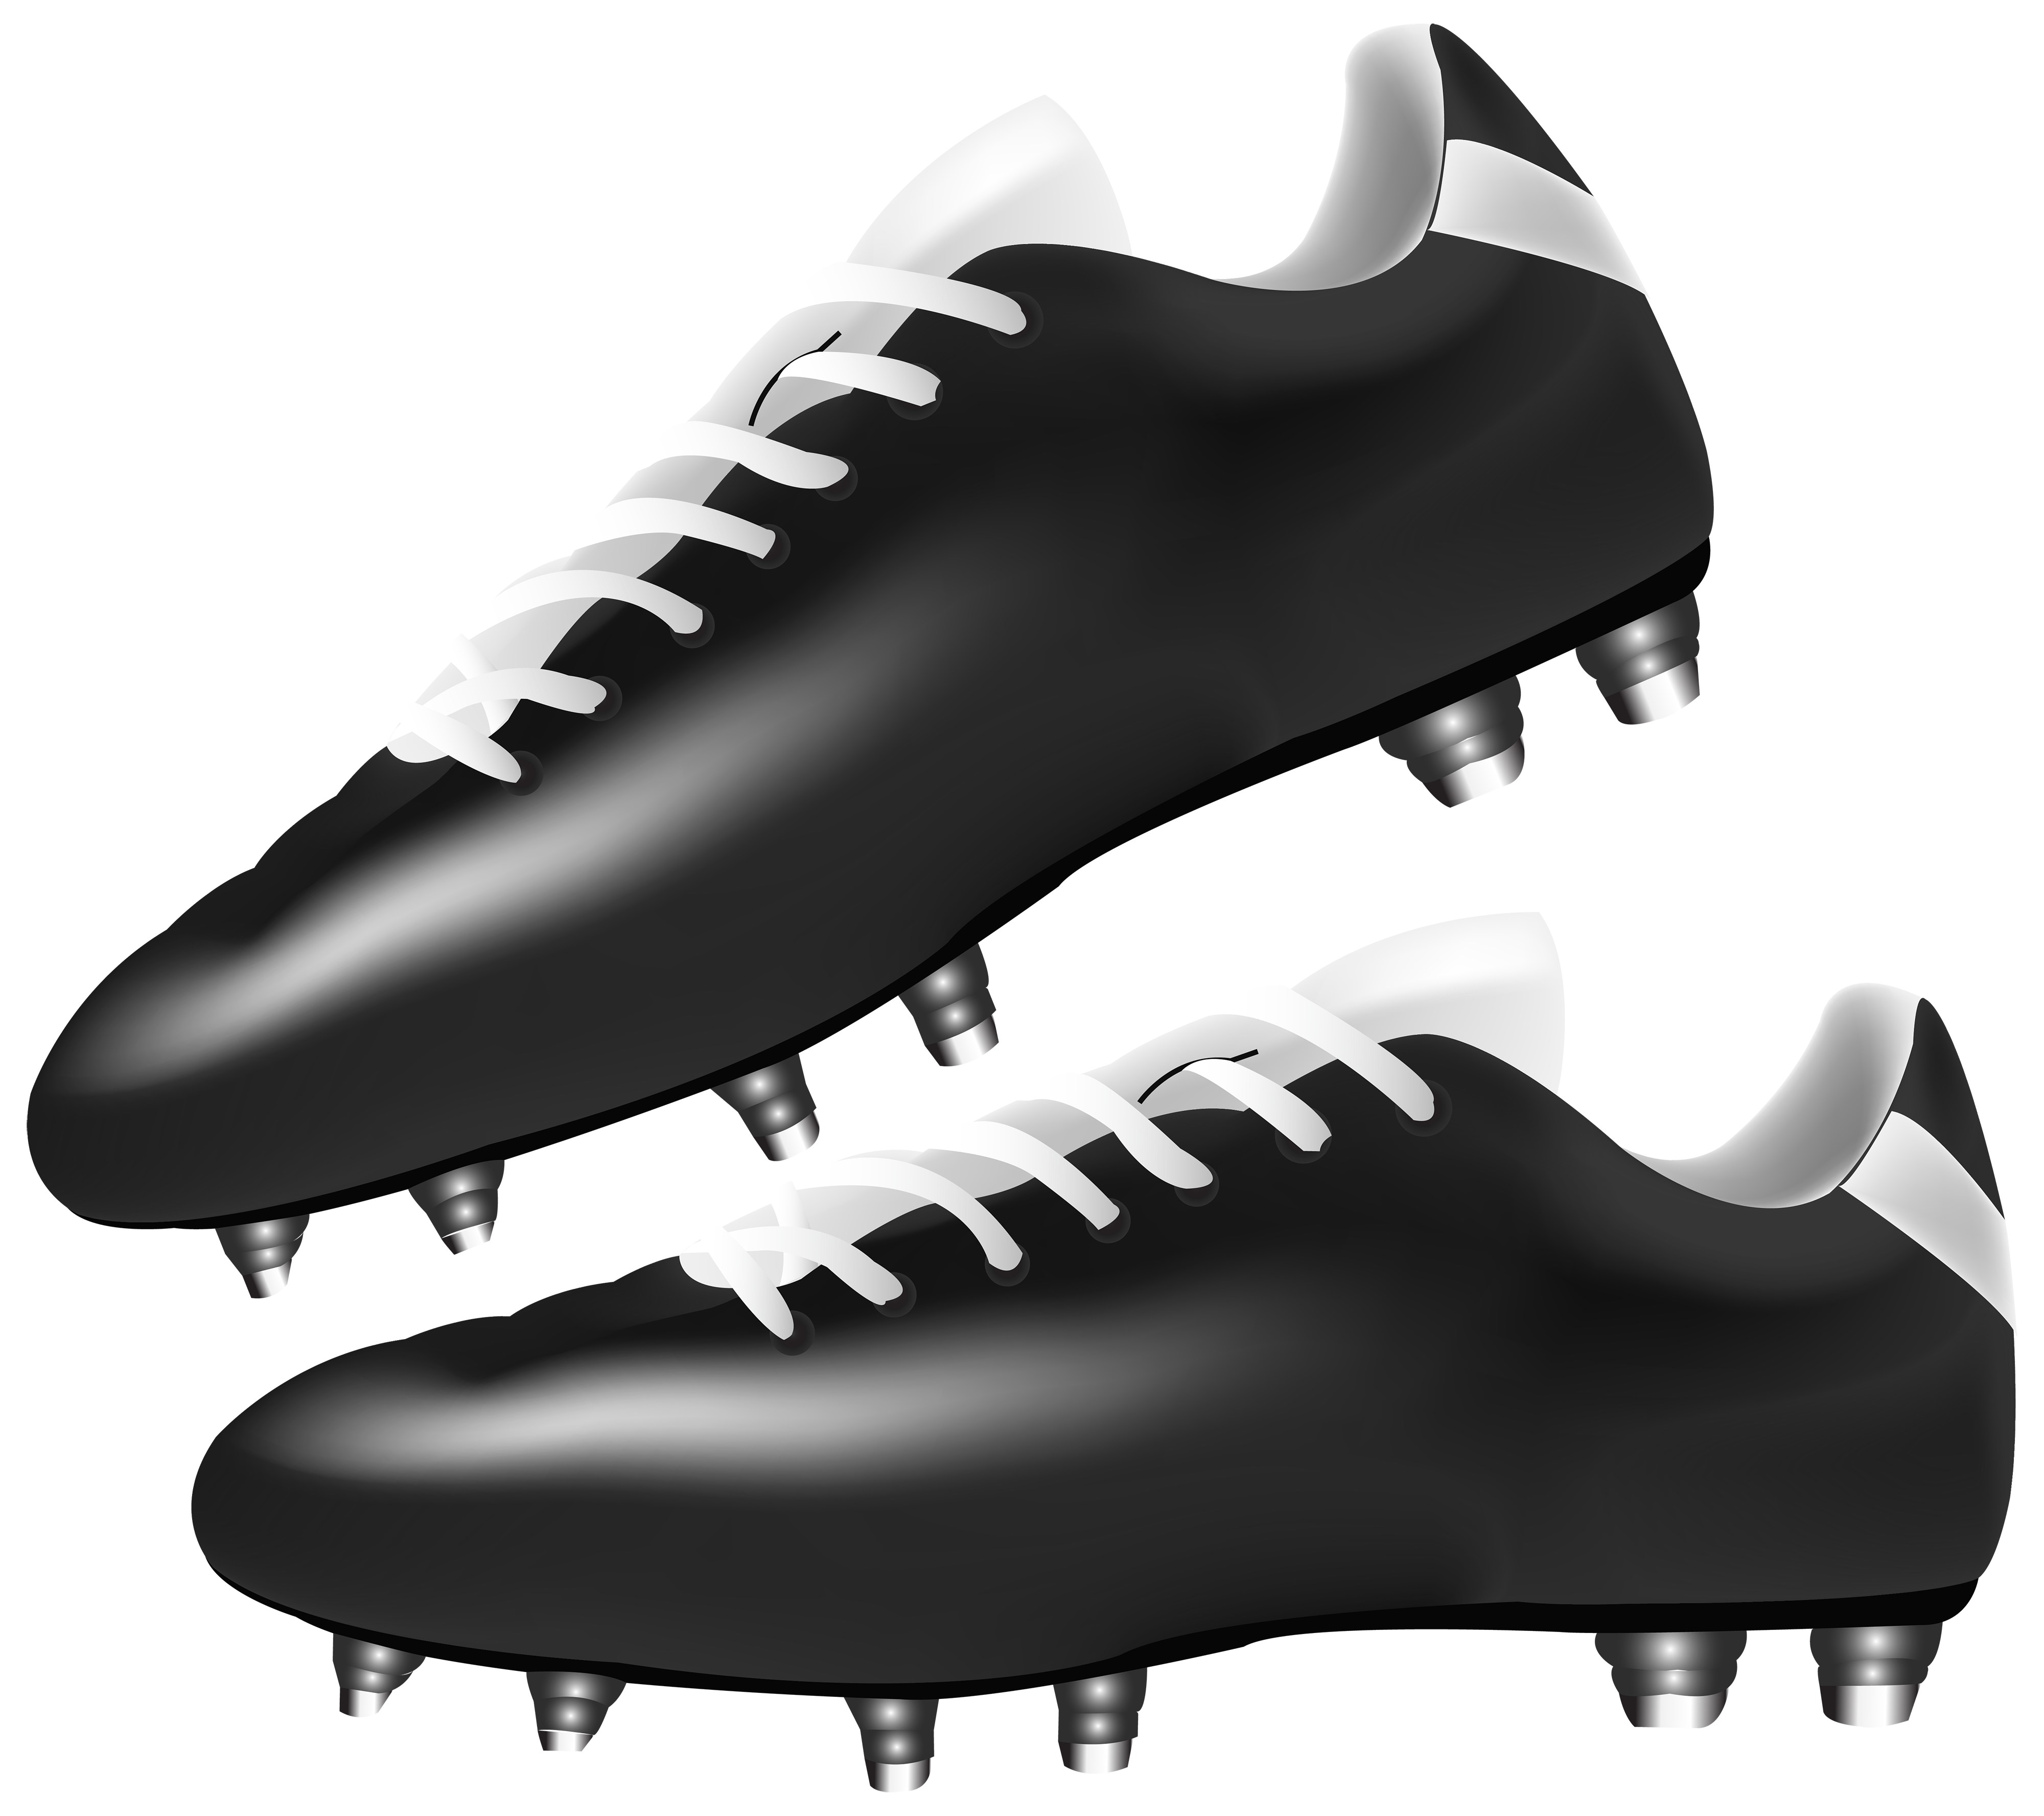 Black football boots png. Winter clipart boot